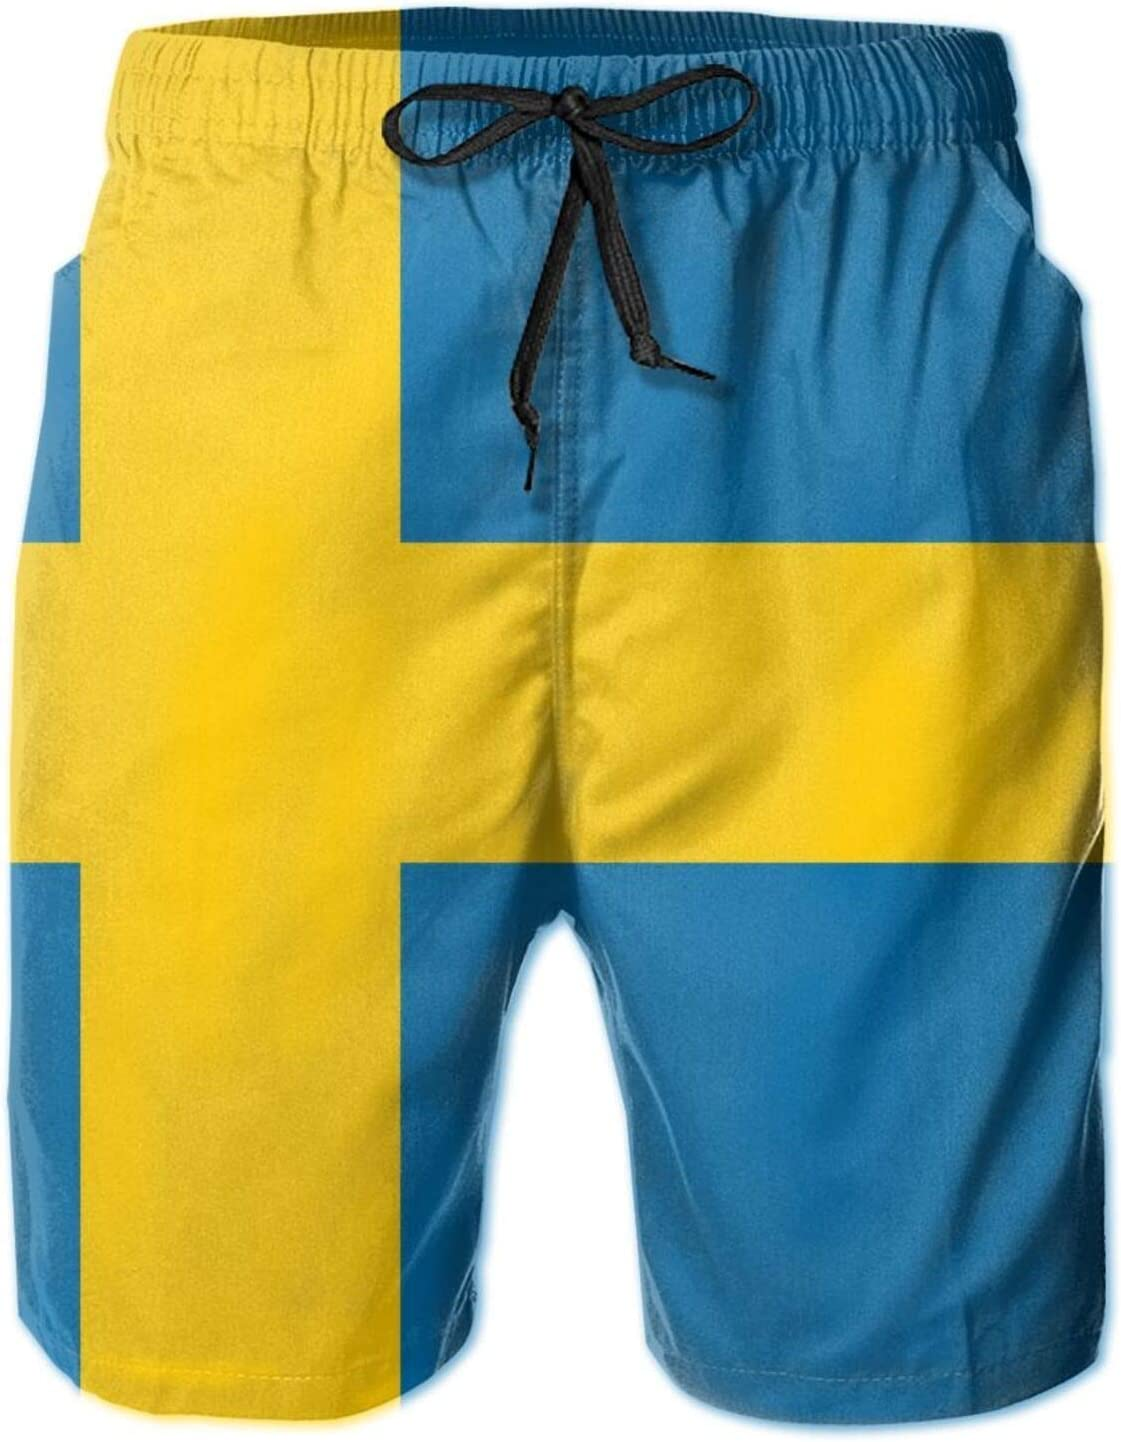 SWEET TANG Mens Beach Board Shorts Swim Trunks, Sweden Flag Sports Running Swim Board Shorts with Mesh Lining and Pocket for Beach Sports Running